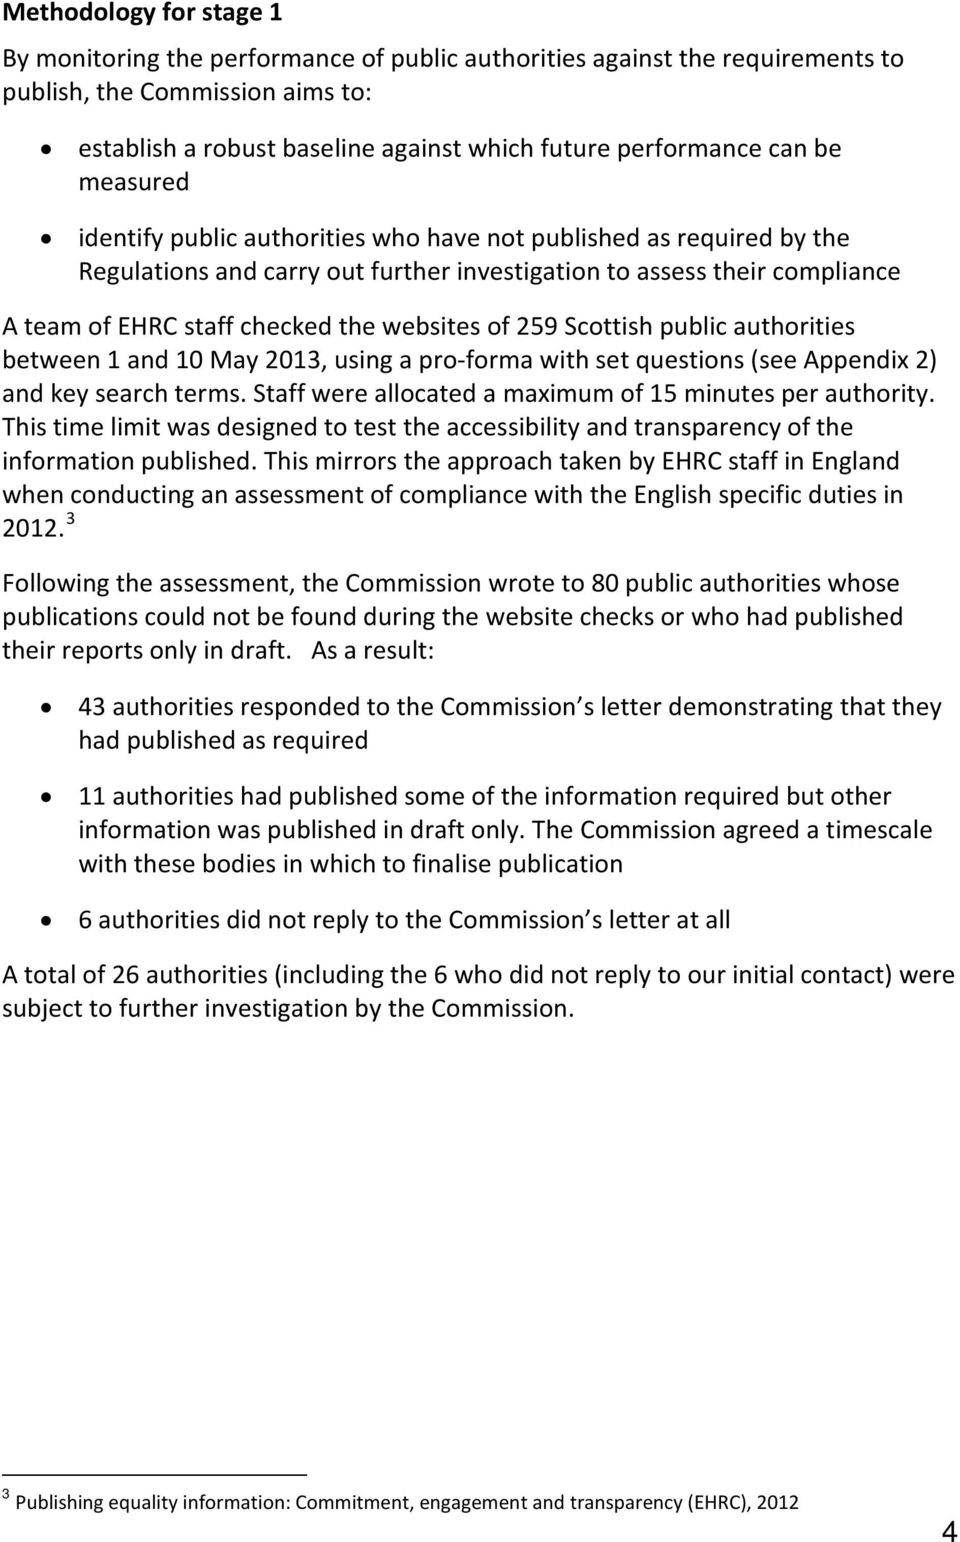 websites of 259 Scottish public authorities between 1 and 10 May 2013, using a pro-forma with set questions (see Appendix 2) and key search terms.